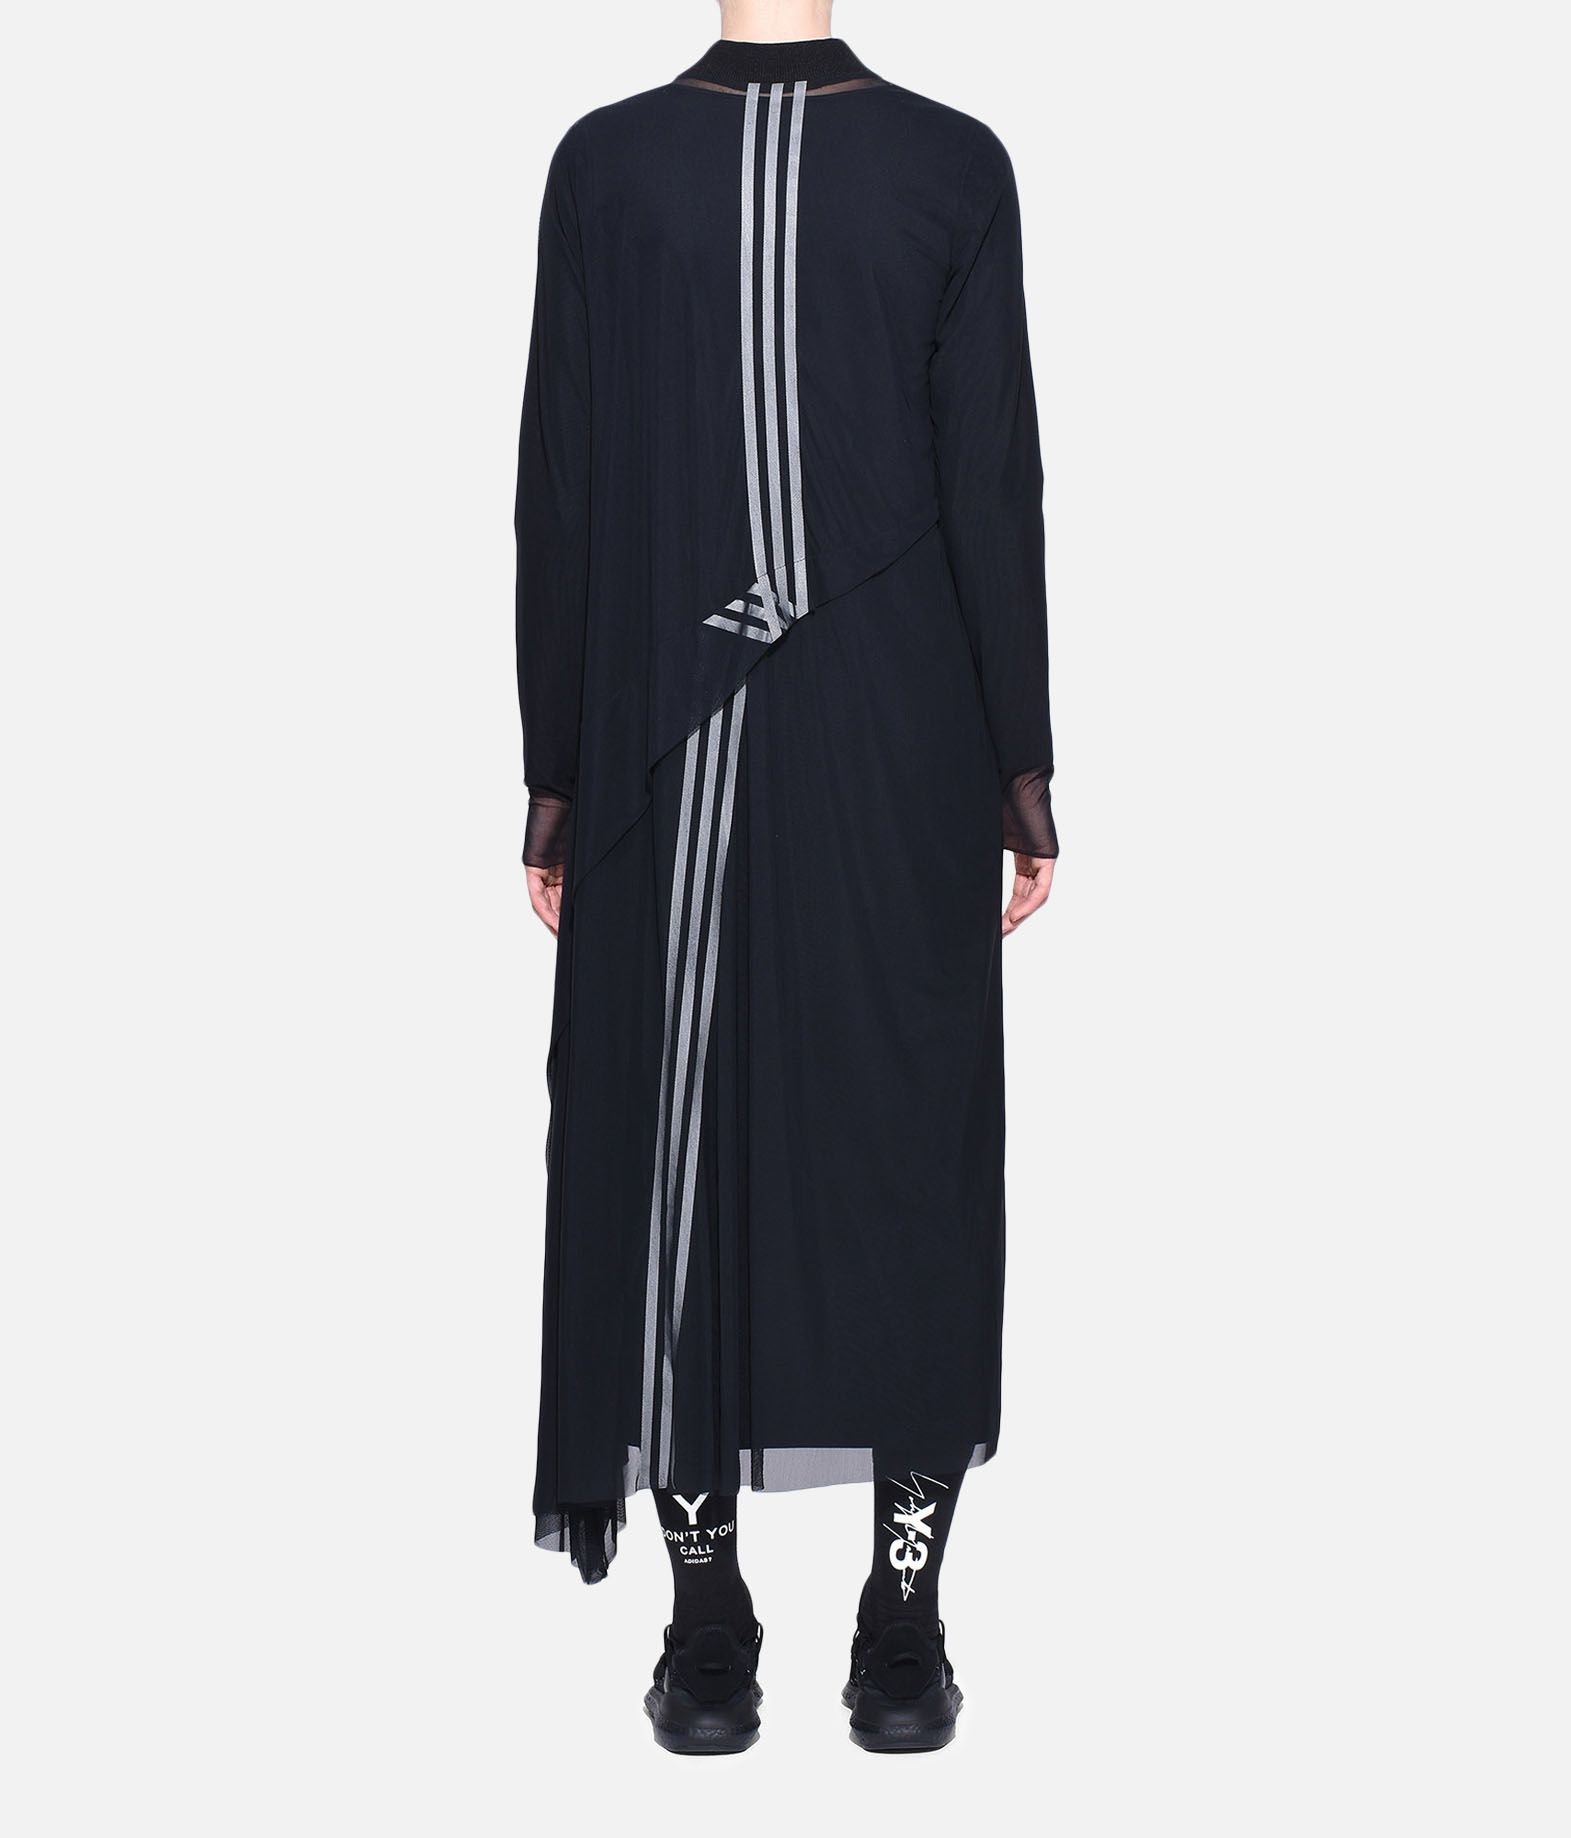 Y-3 Y-3 3-Stripes Mesh Dress Long dress Woman d